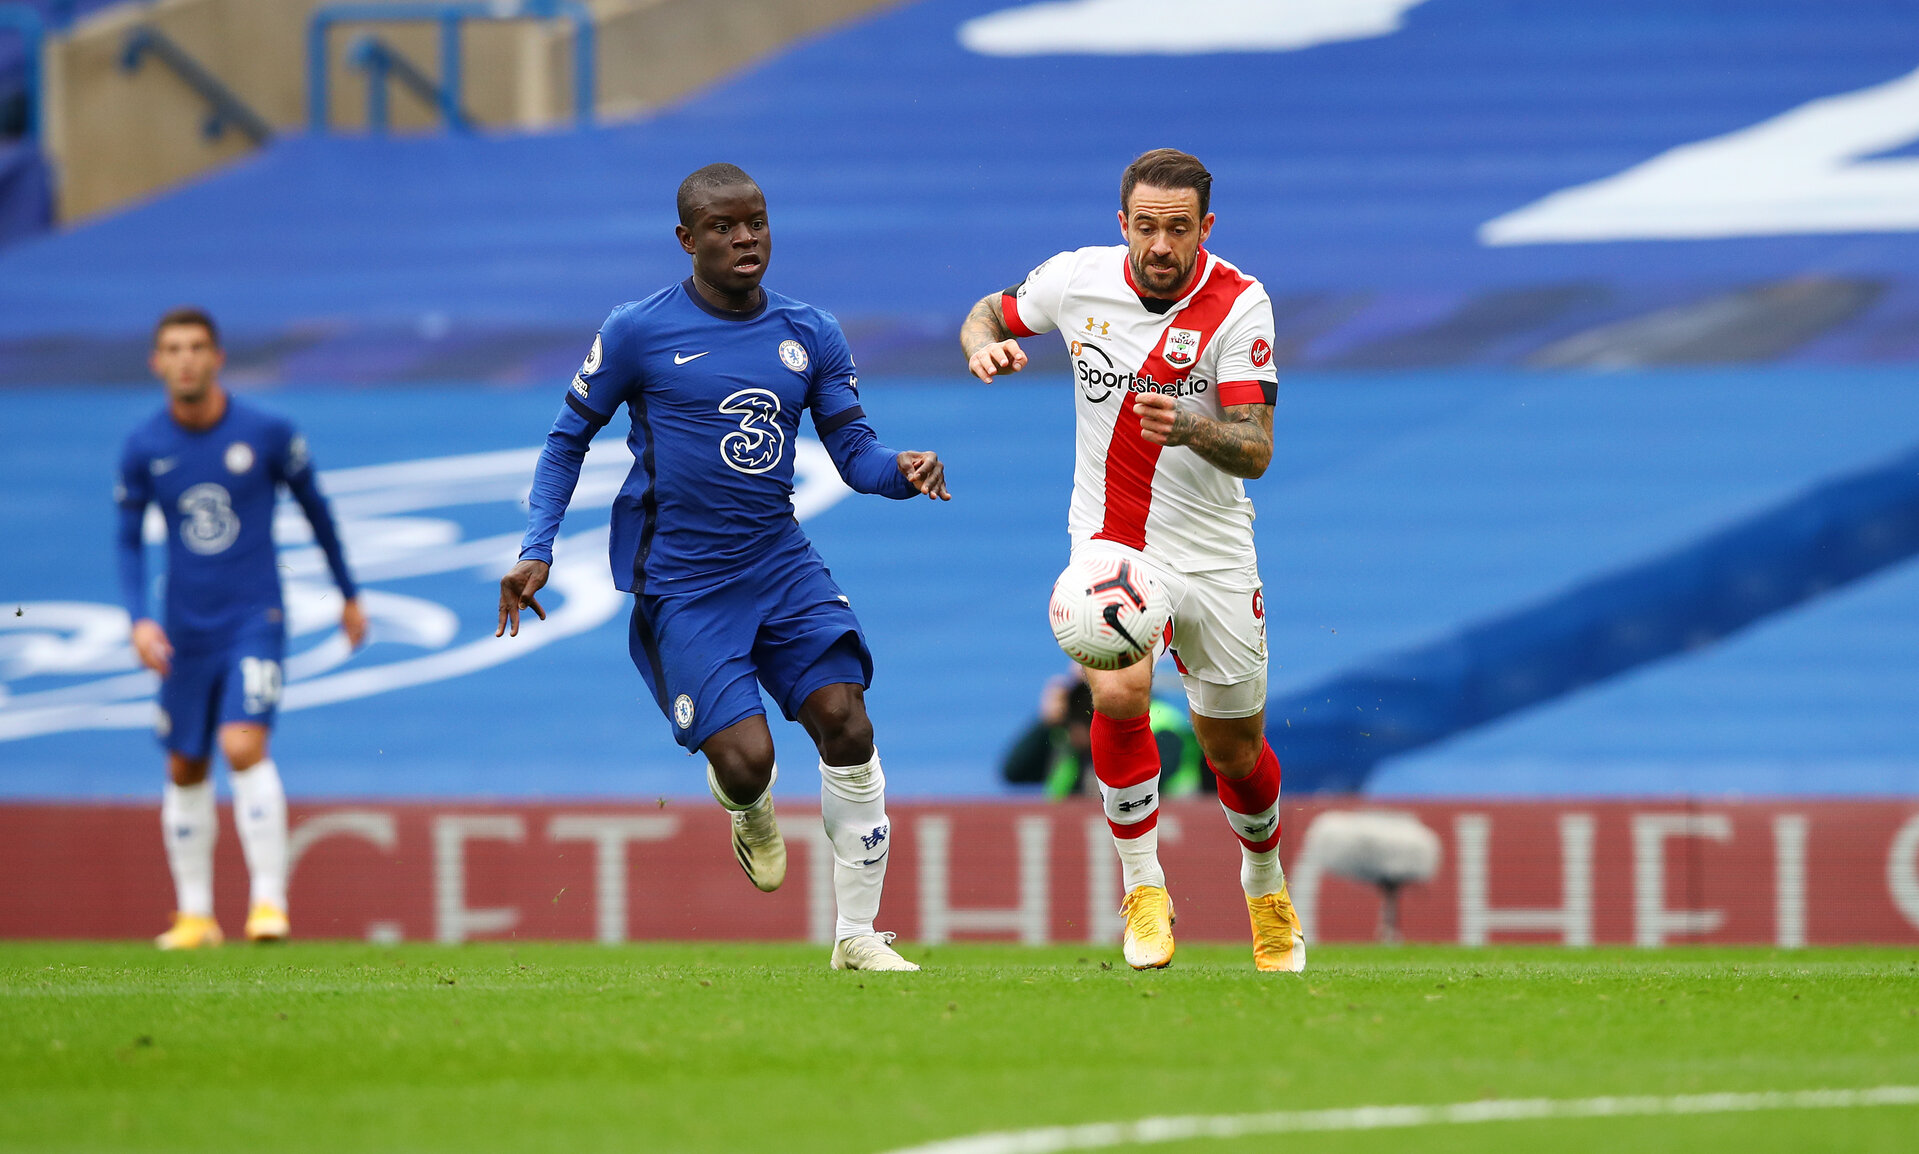 LONDON, ENGLAND - OCTOBER 17: N'Golo Kante(L) of Chelea and Danny Ings(R) of Southampton during the Premier League match between Chelsea and Southampton at Stamford Bridge on October 17, 2020 in London, England. Sporting stadiums around the UK remain under strict restrictions due to the Coronavirus Pandemic as Government social distancing laws prohibit fans inside venues resulting in games being played behind closed doors. (Photo by Matt Watson/Southampton FC via Getty Images)